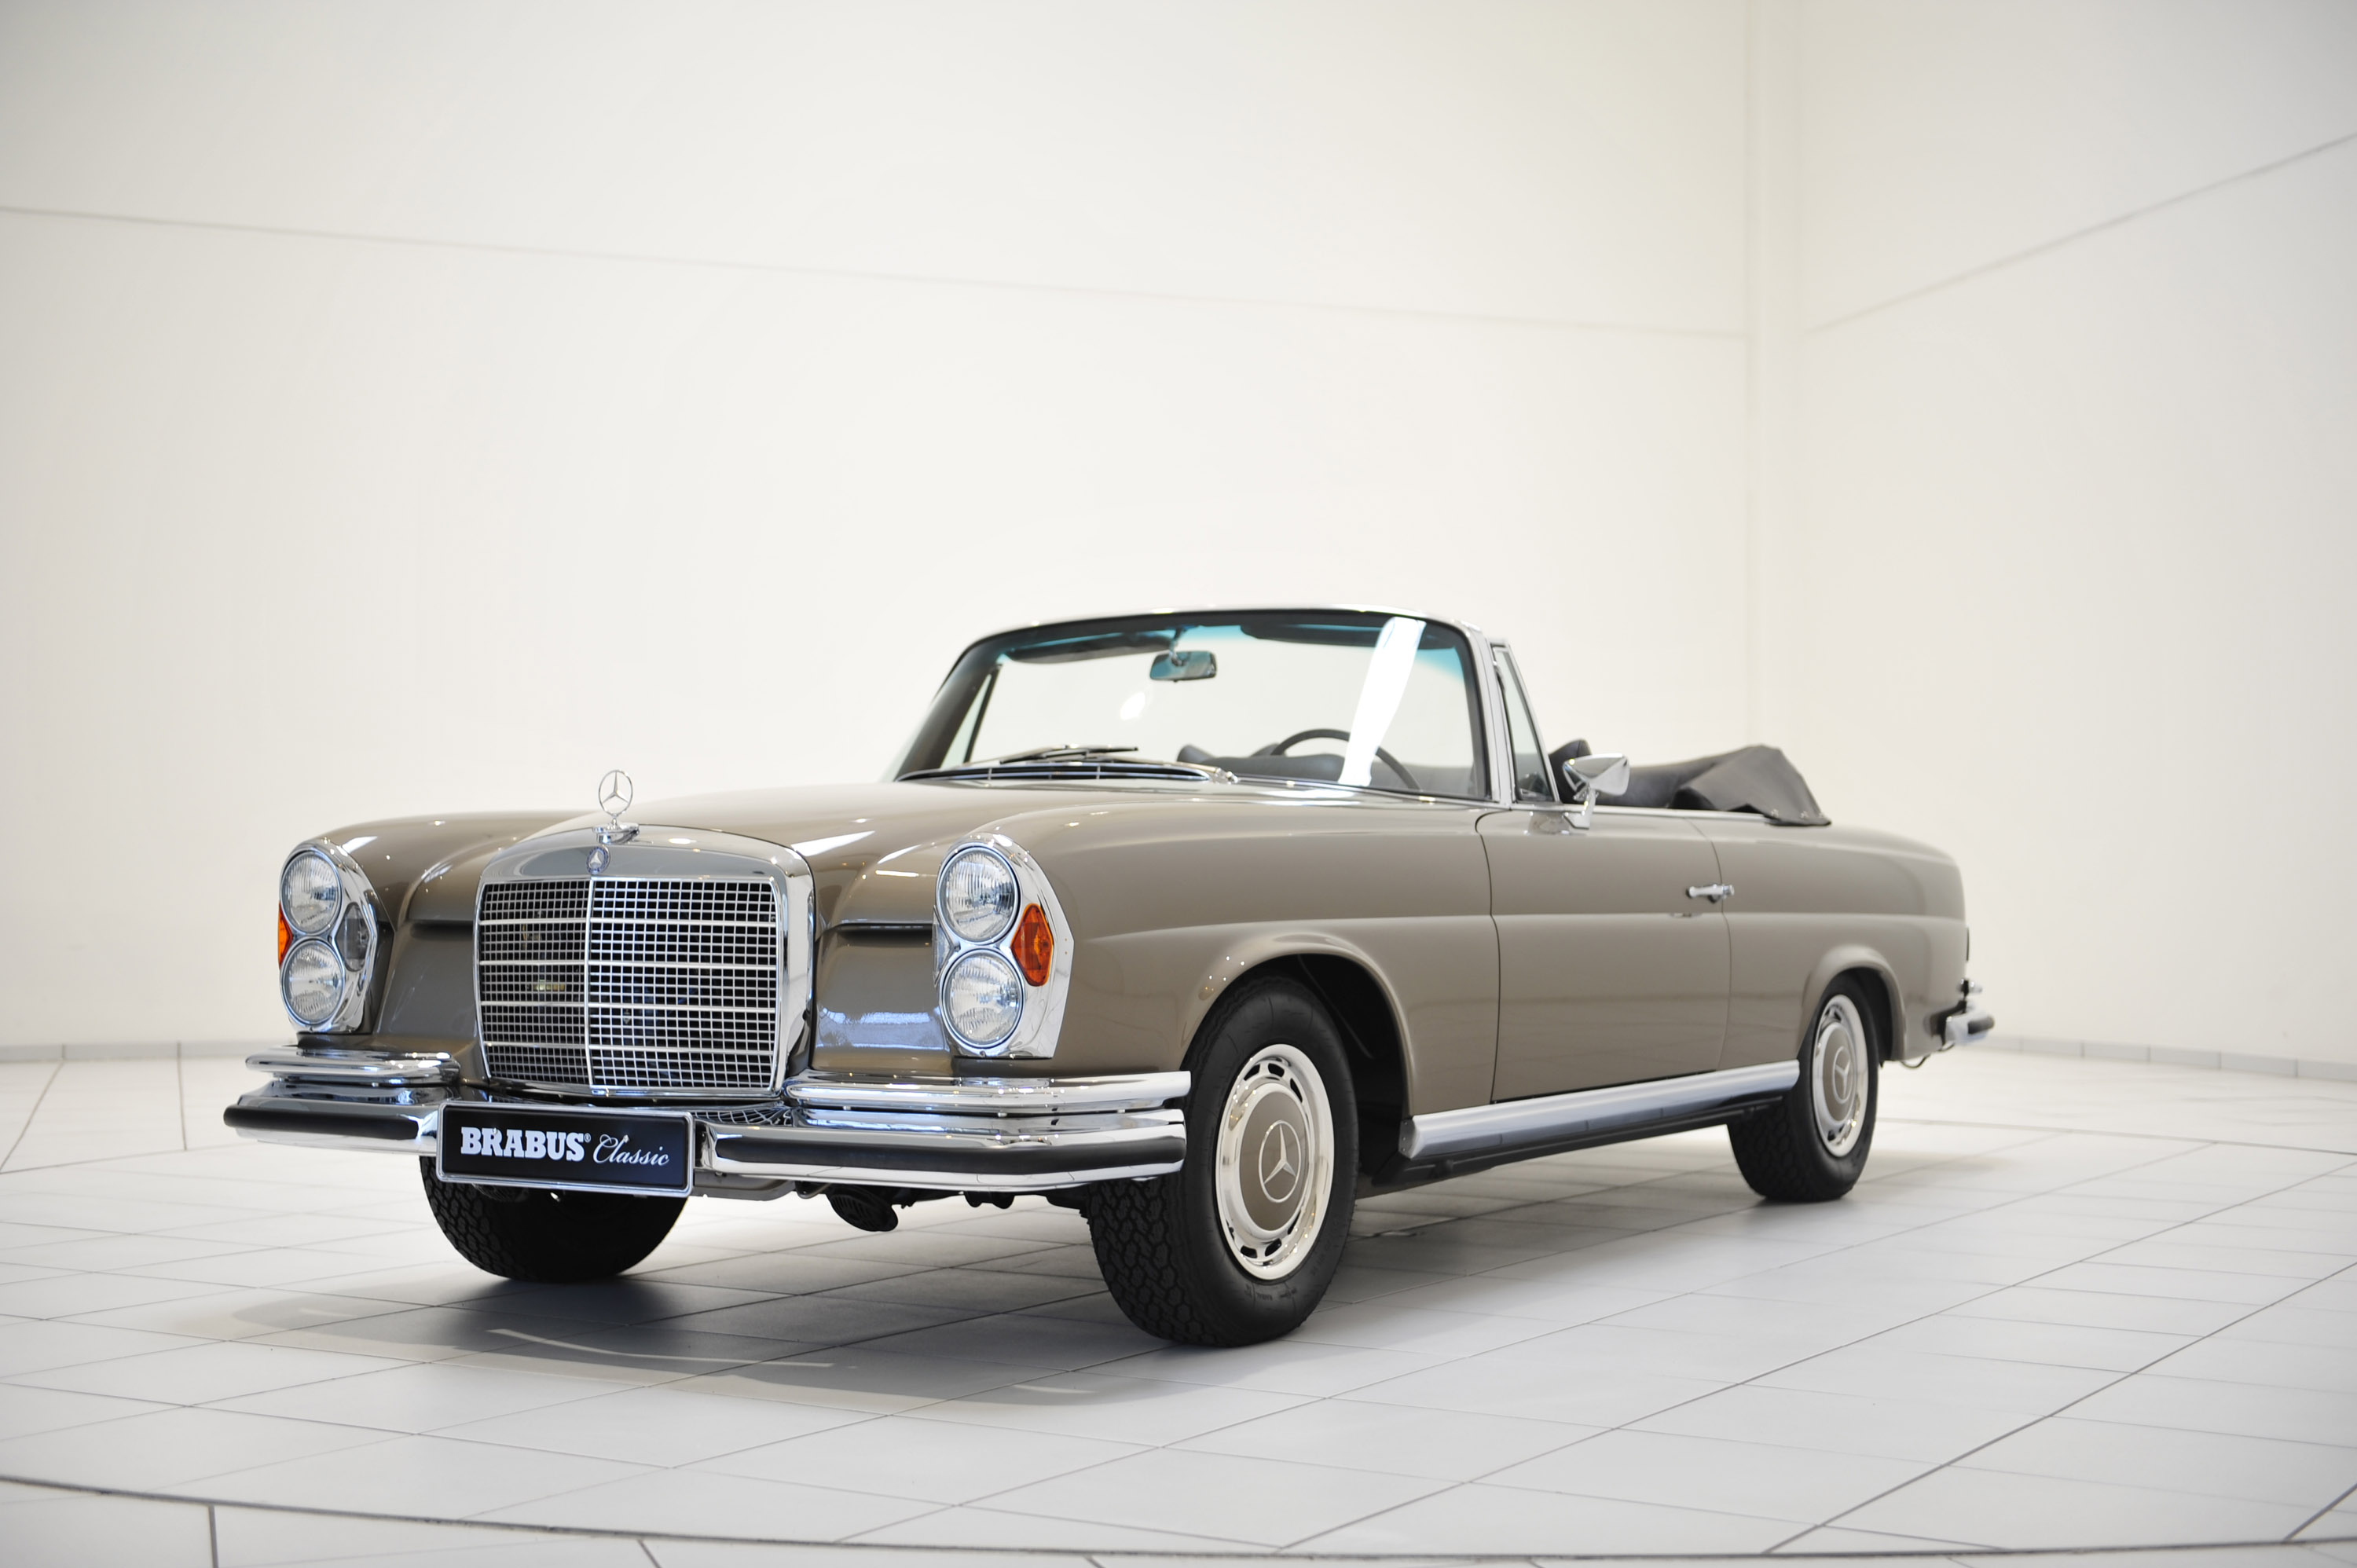 Brabus classic mercedes 280 se cabriolet w111 picture 104976 for Pictures of a mercedes benz